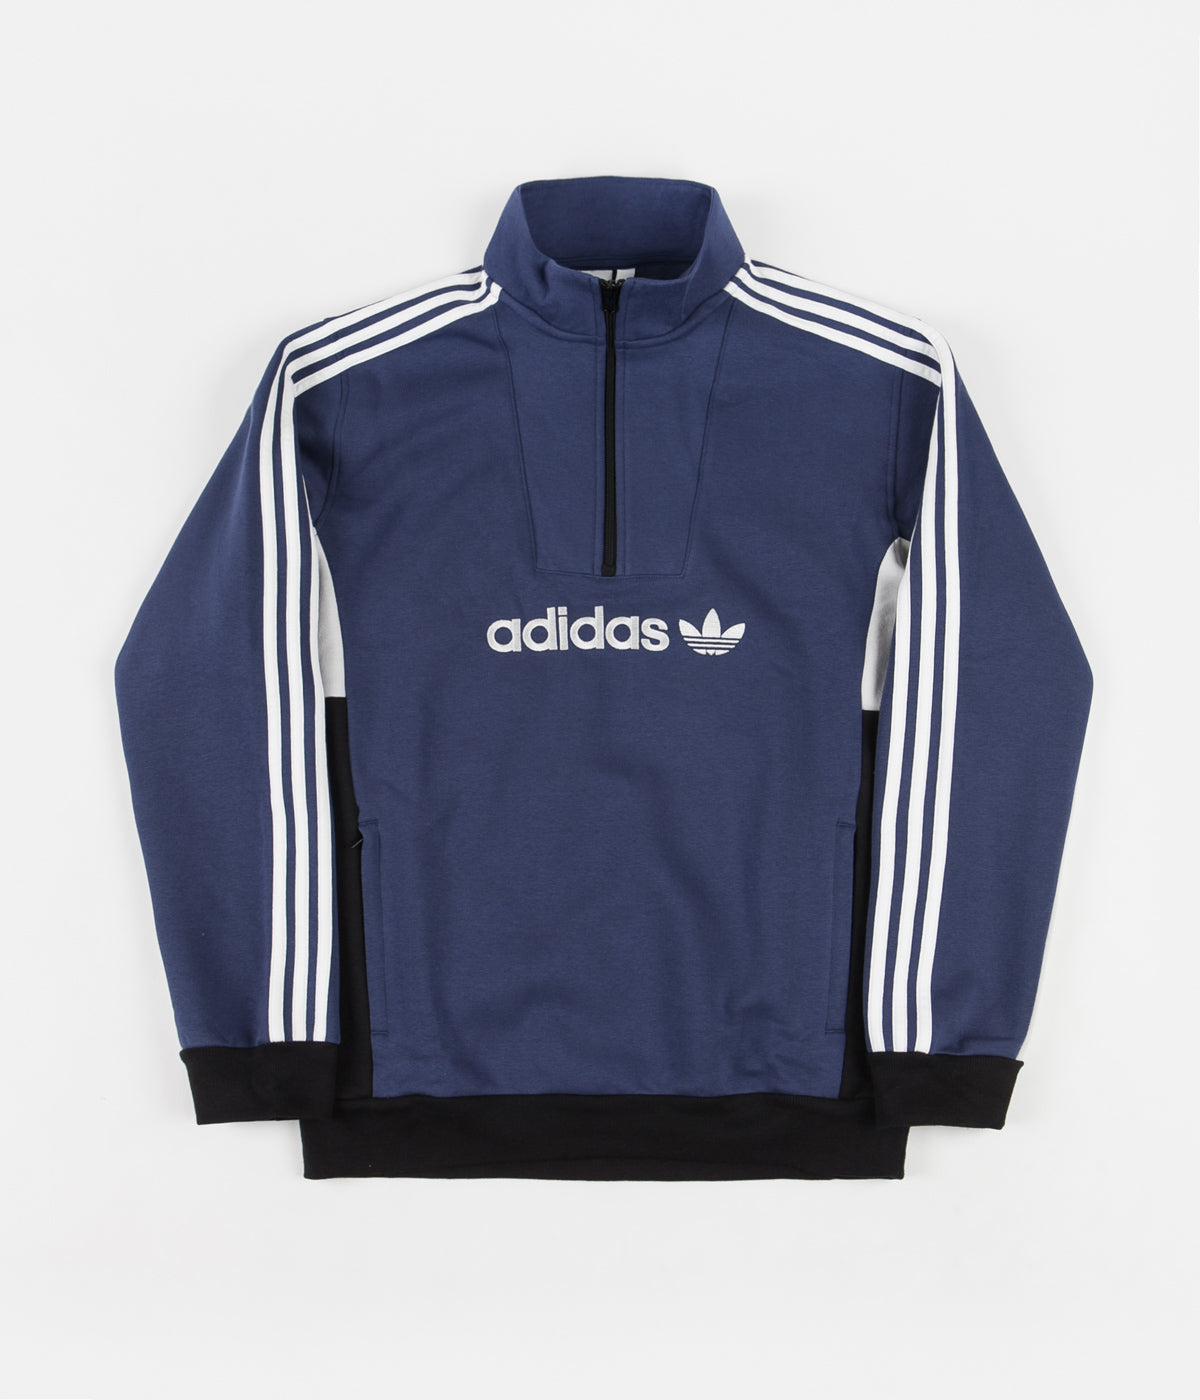 Adidas Modular Quarter Zip Sweatshirt - Tech Indigo / Grey One / White / Black